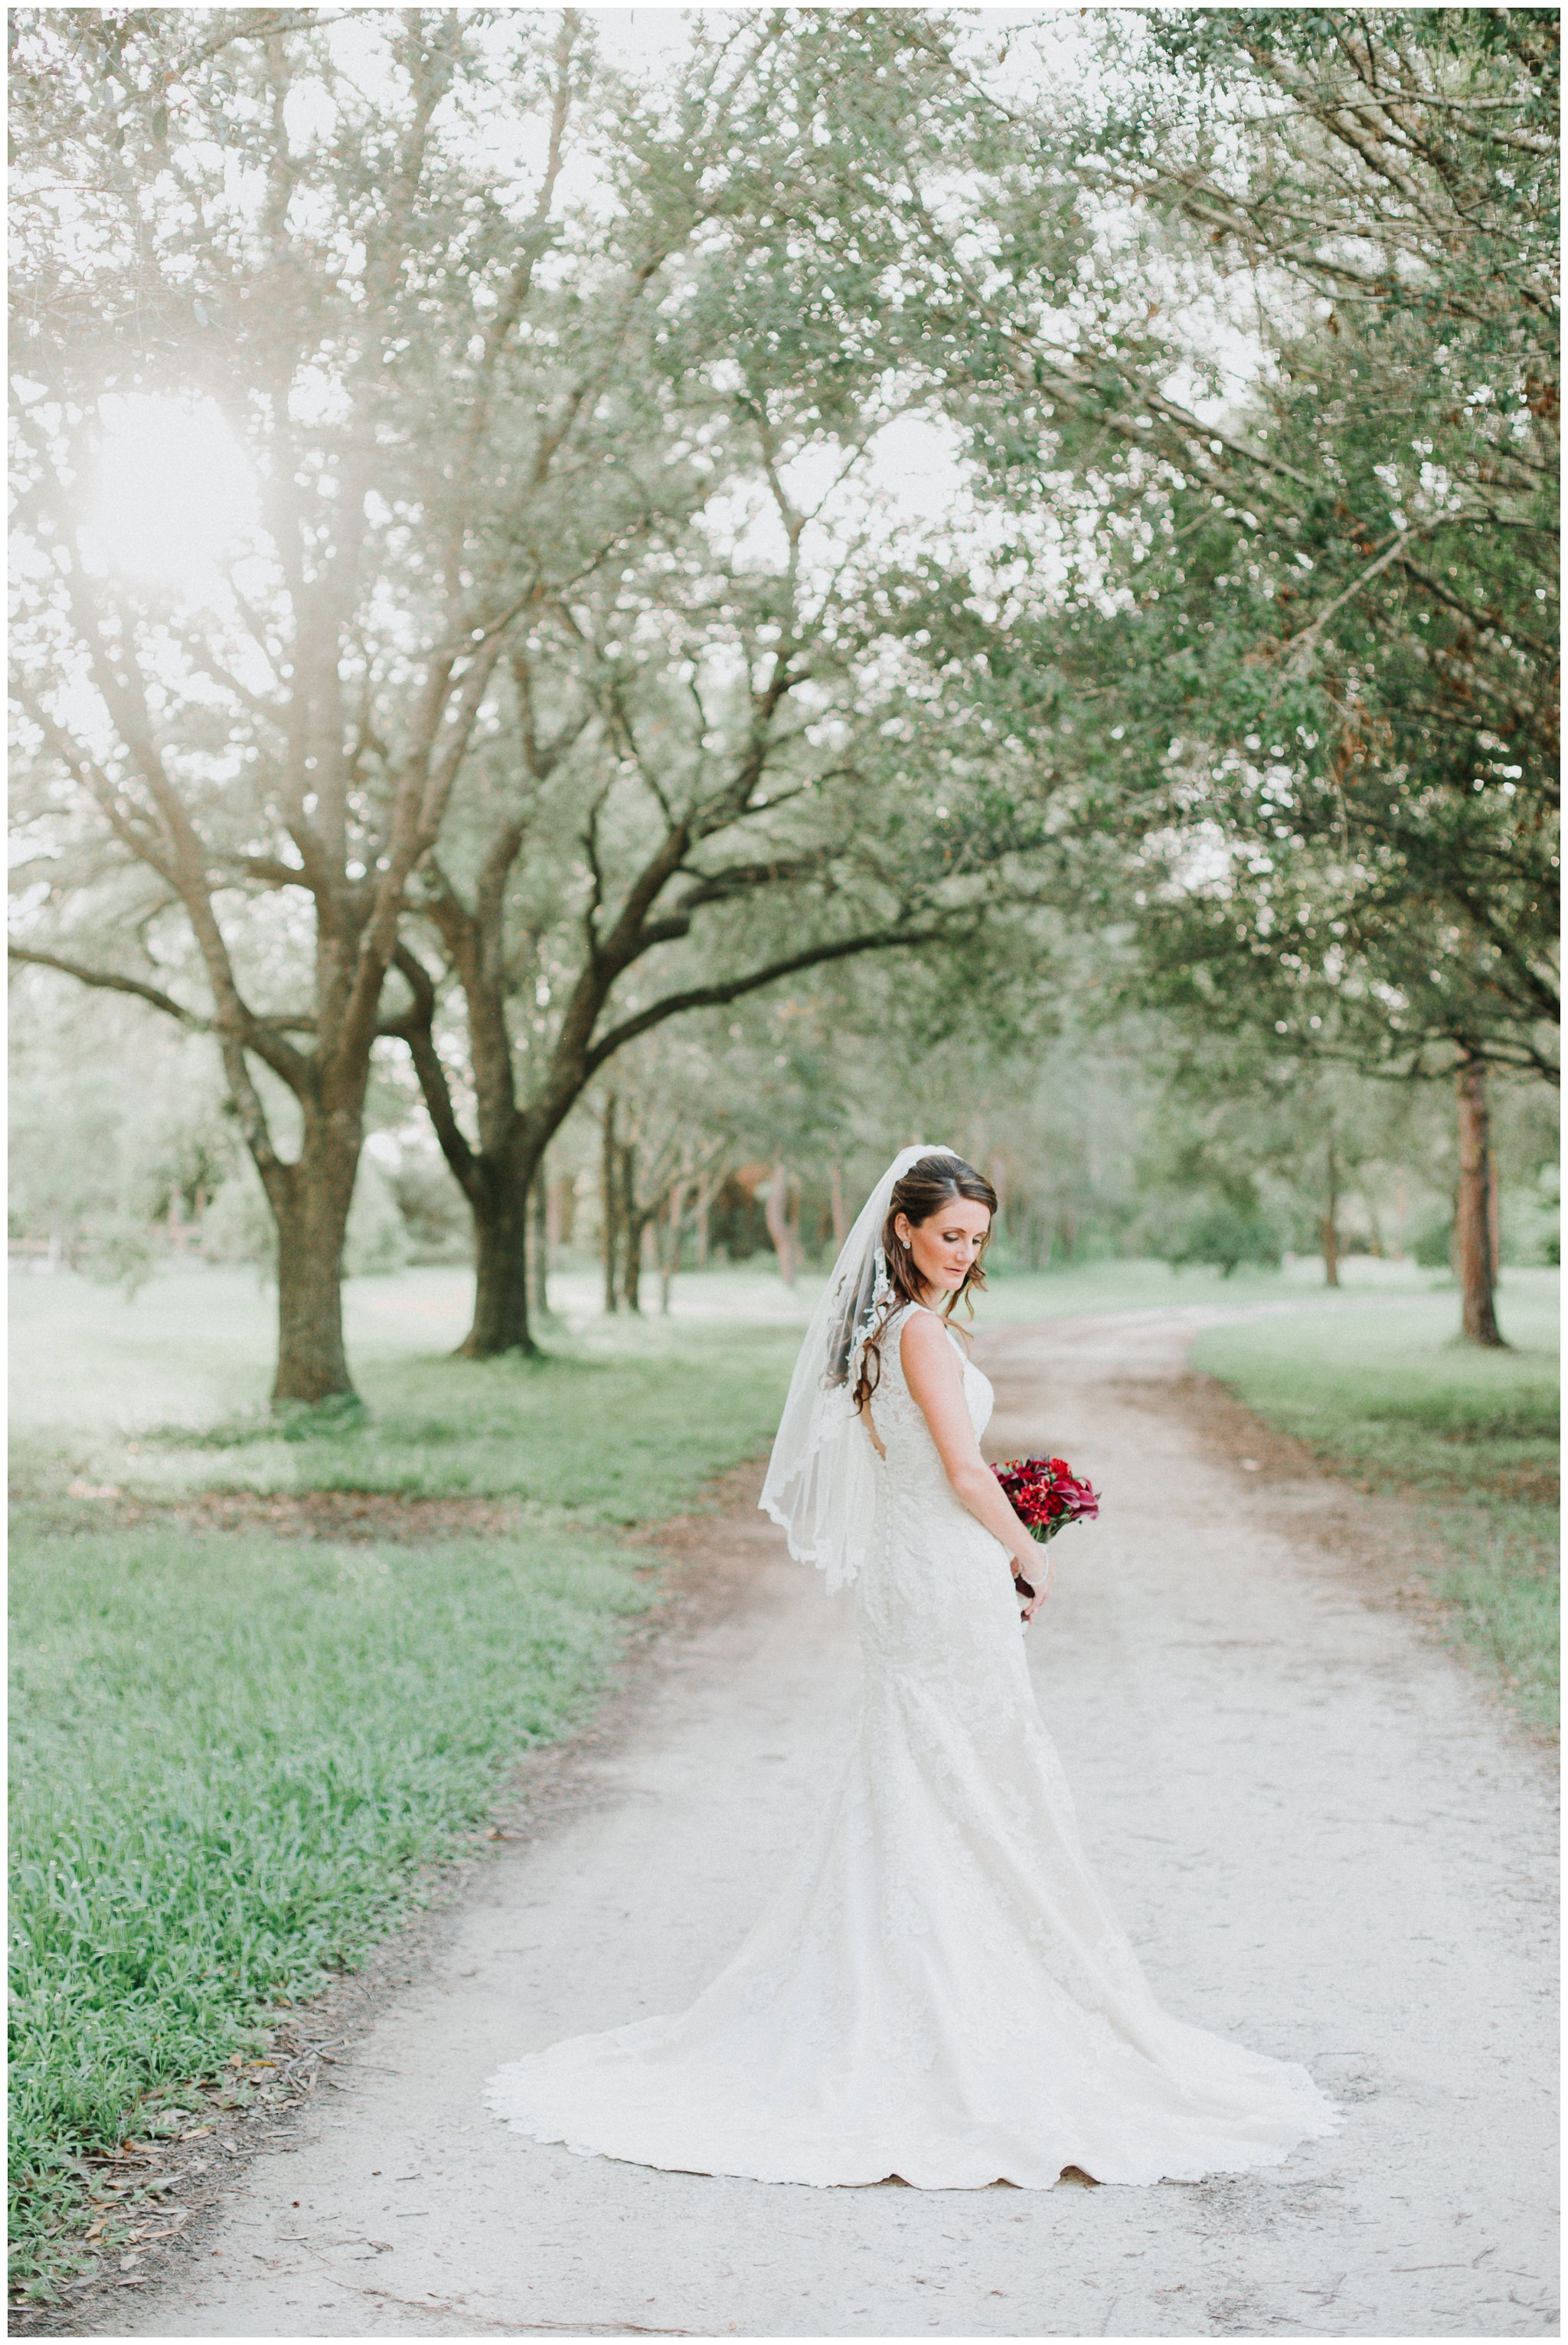 One of my favorite bridal portraits